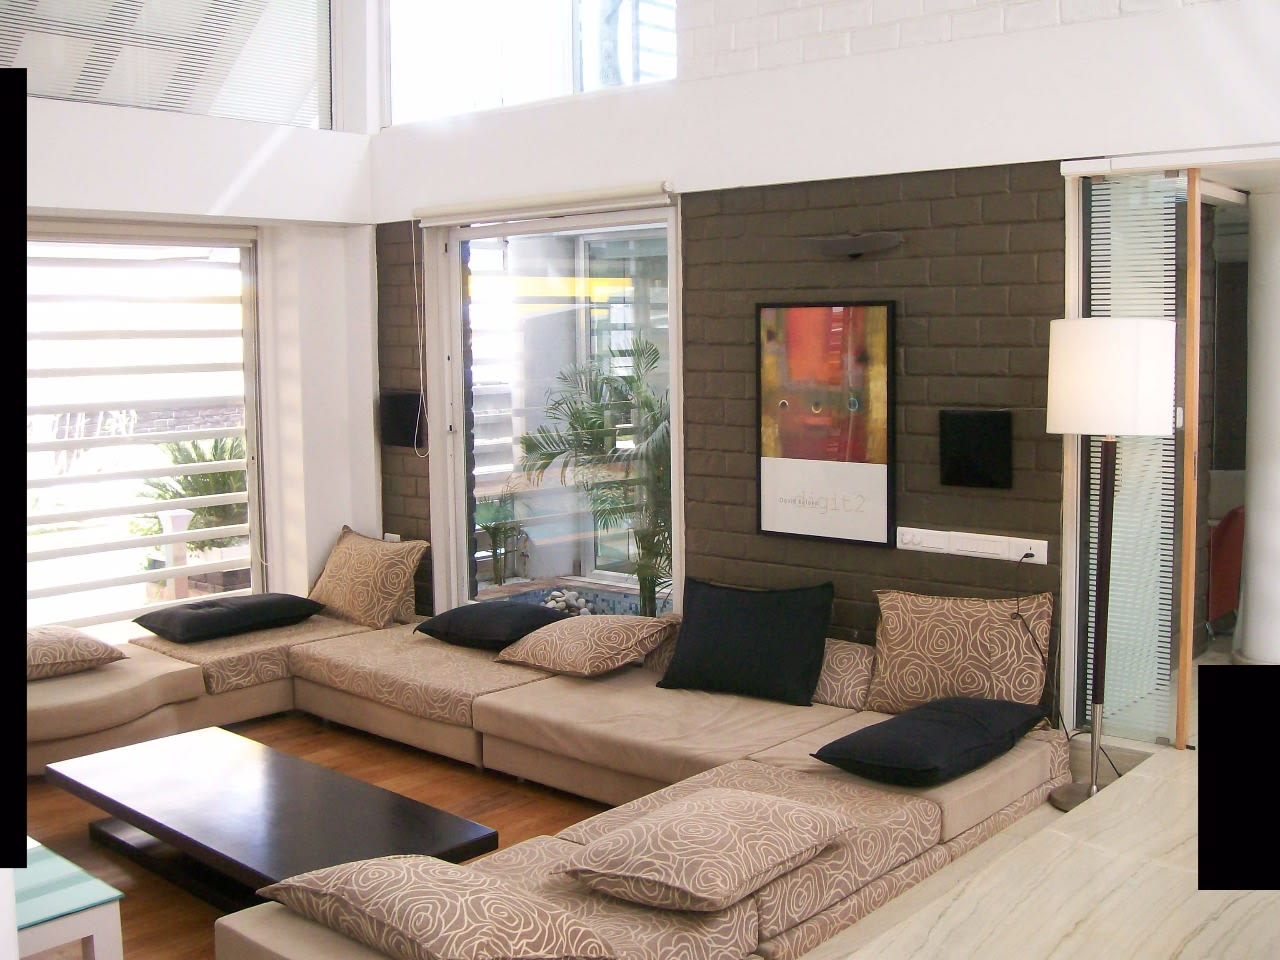 L shape sofa with wooden flooring  and brick wall design by Richa Jindal Living-room Modern | Interior Design Photos & Ideas